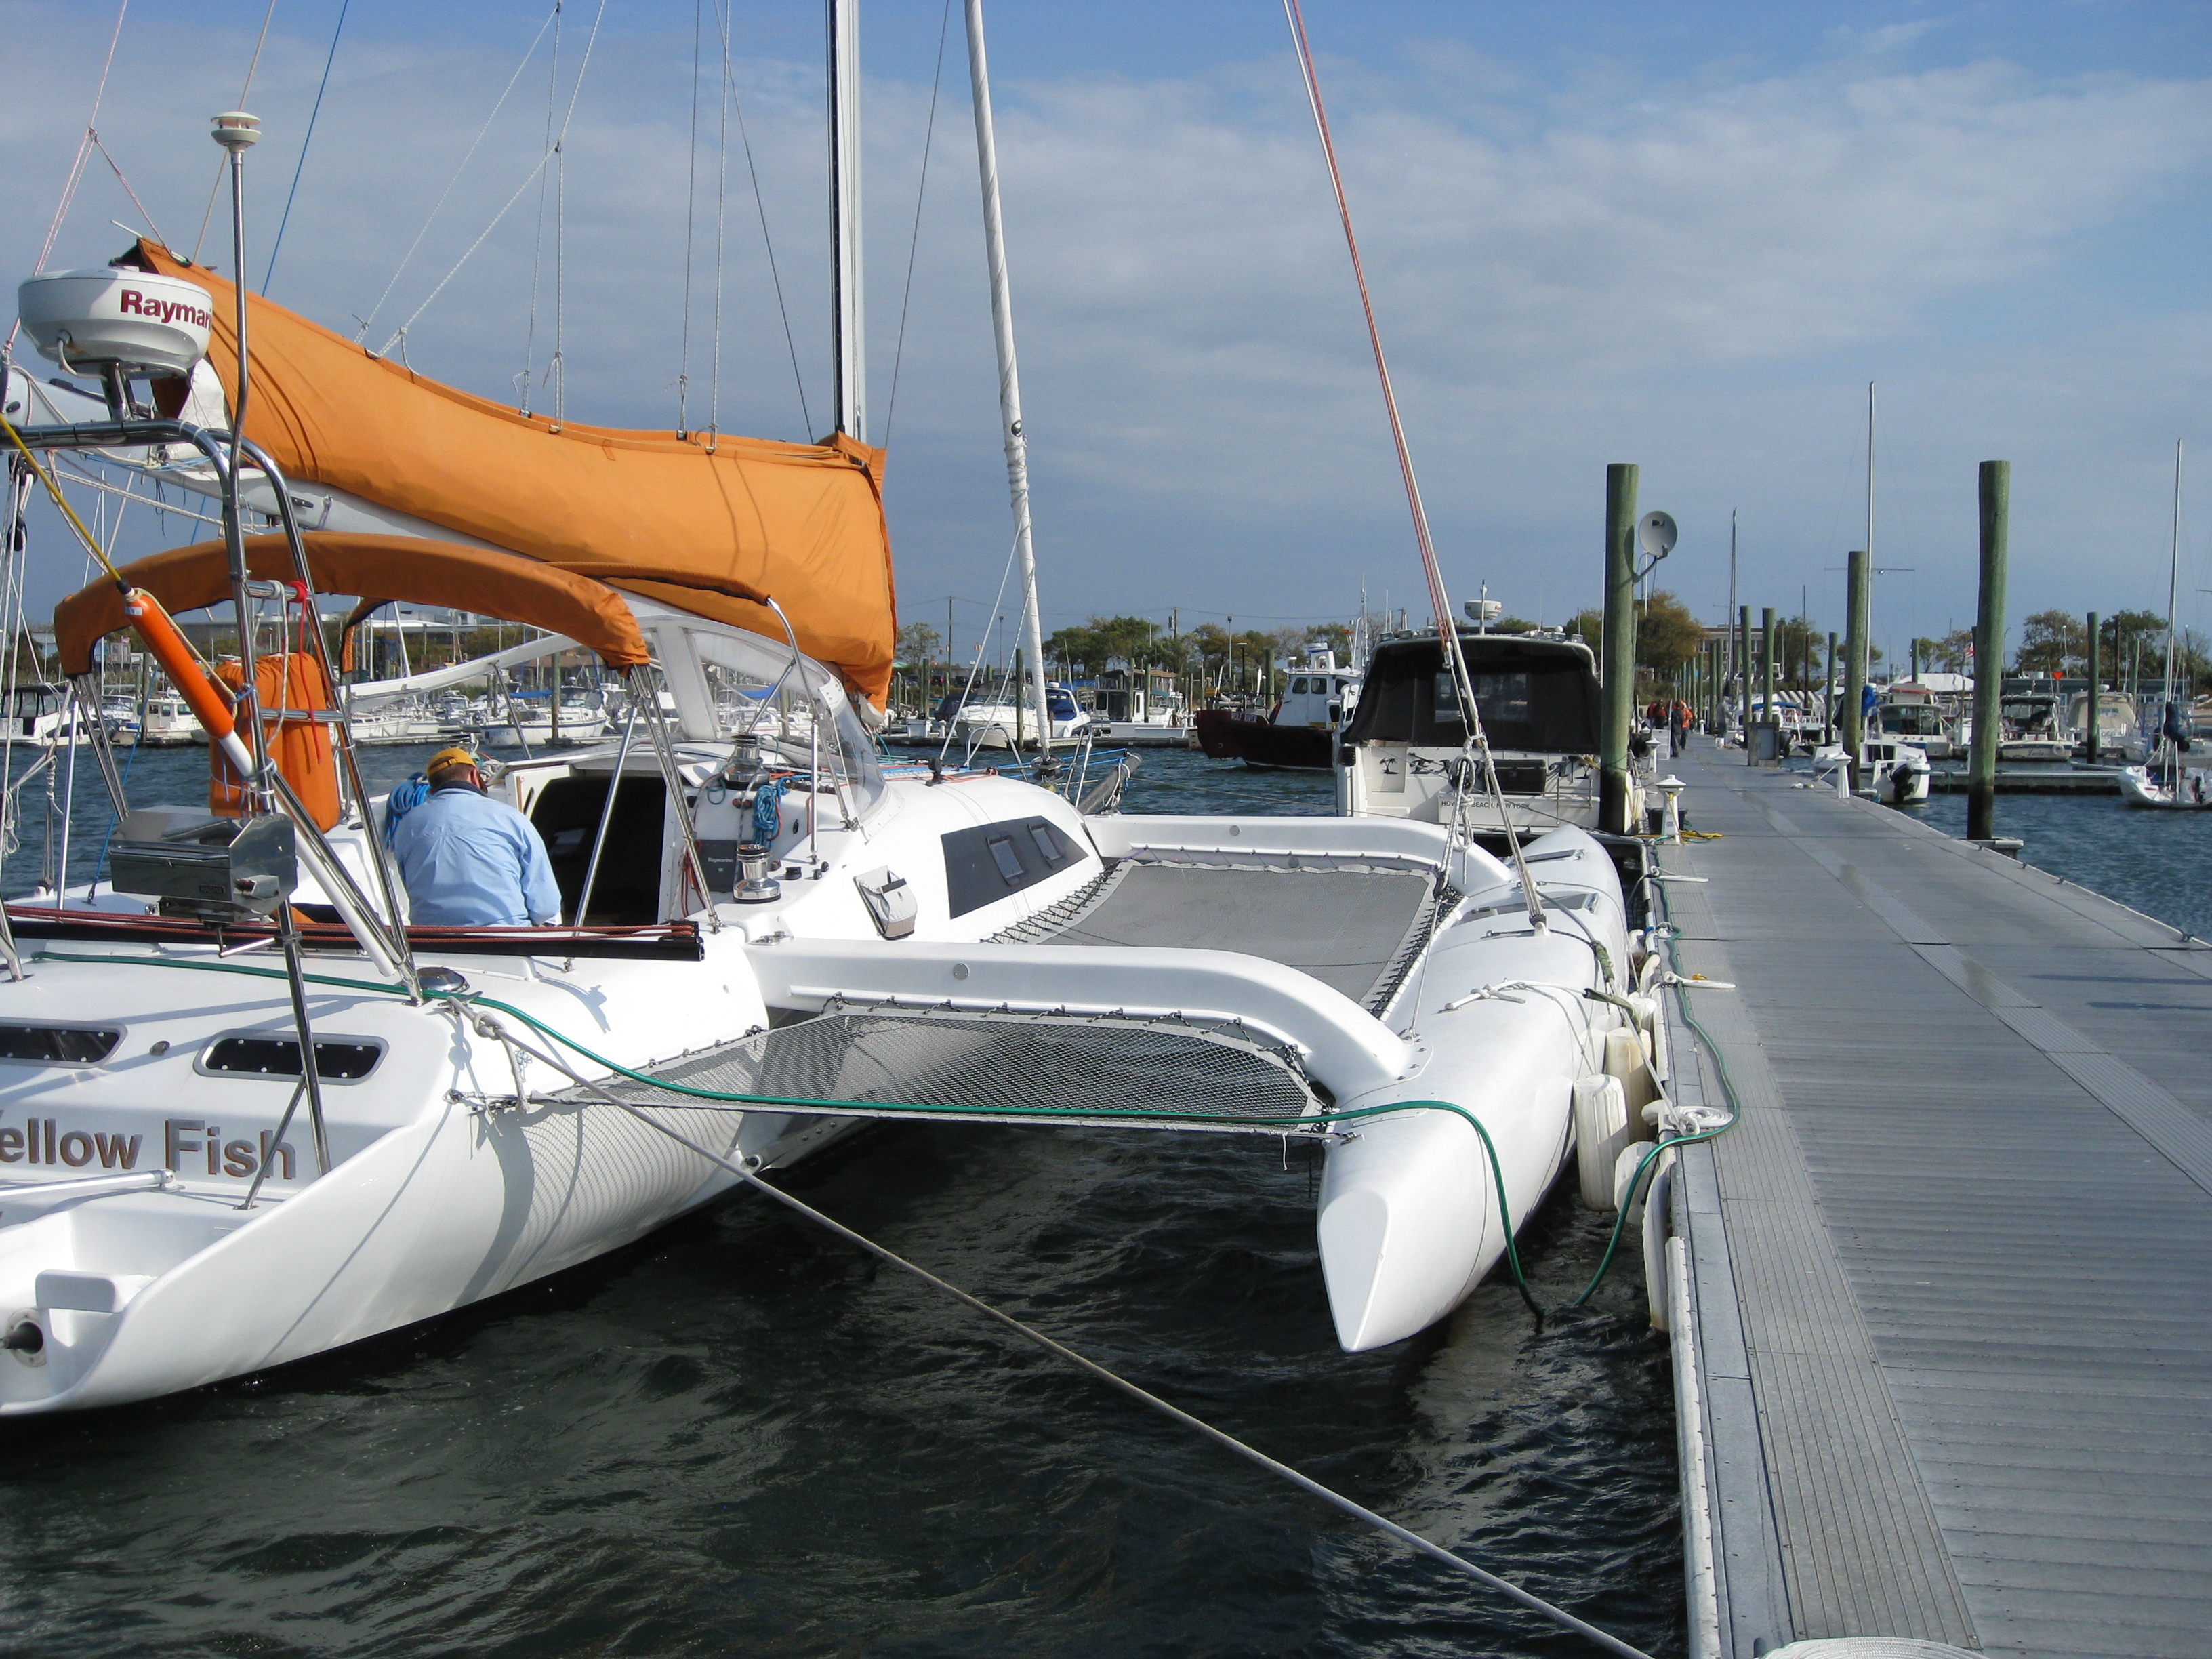 Examples of finished boats | F36 #005 Ravenswing - Trimaran